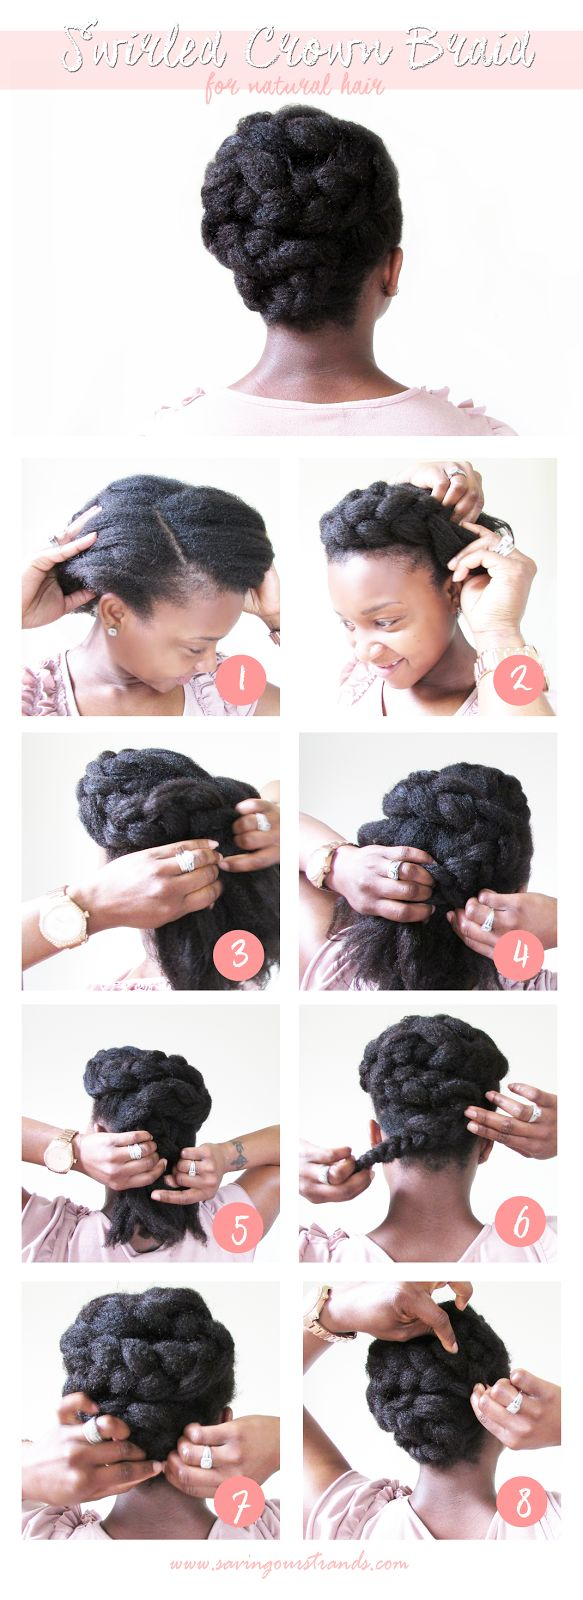 25+ Best Ideas About Tight Side Braid On Pinterest  Faux Side Shave, Side  Braid Tutorial And Yeezus Top